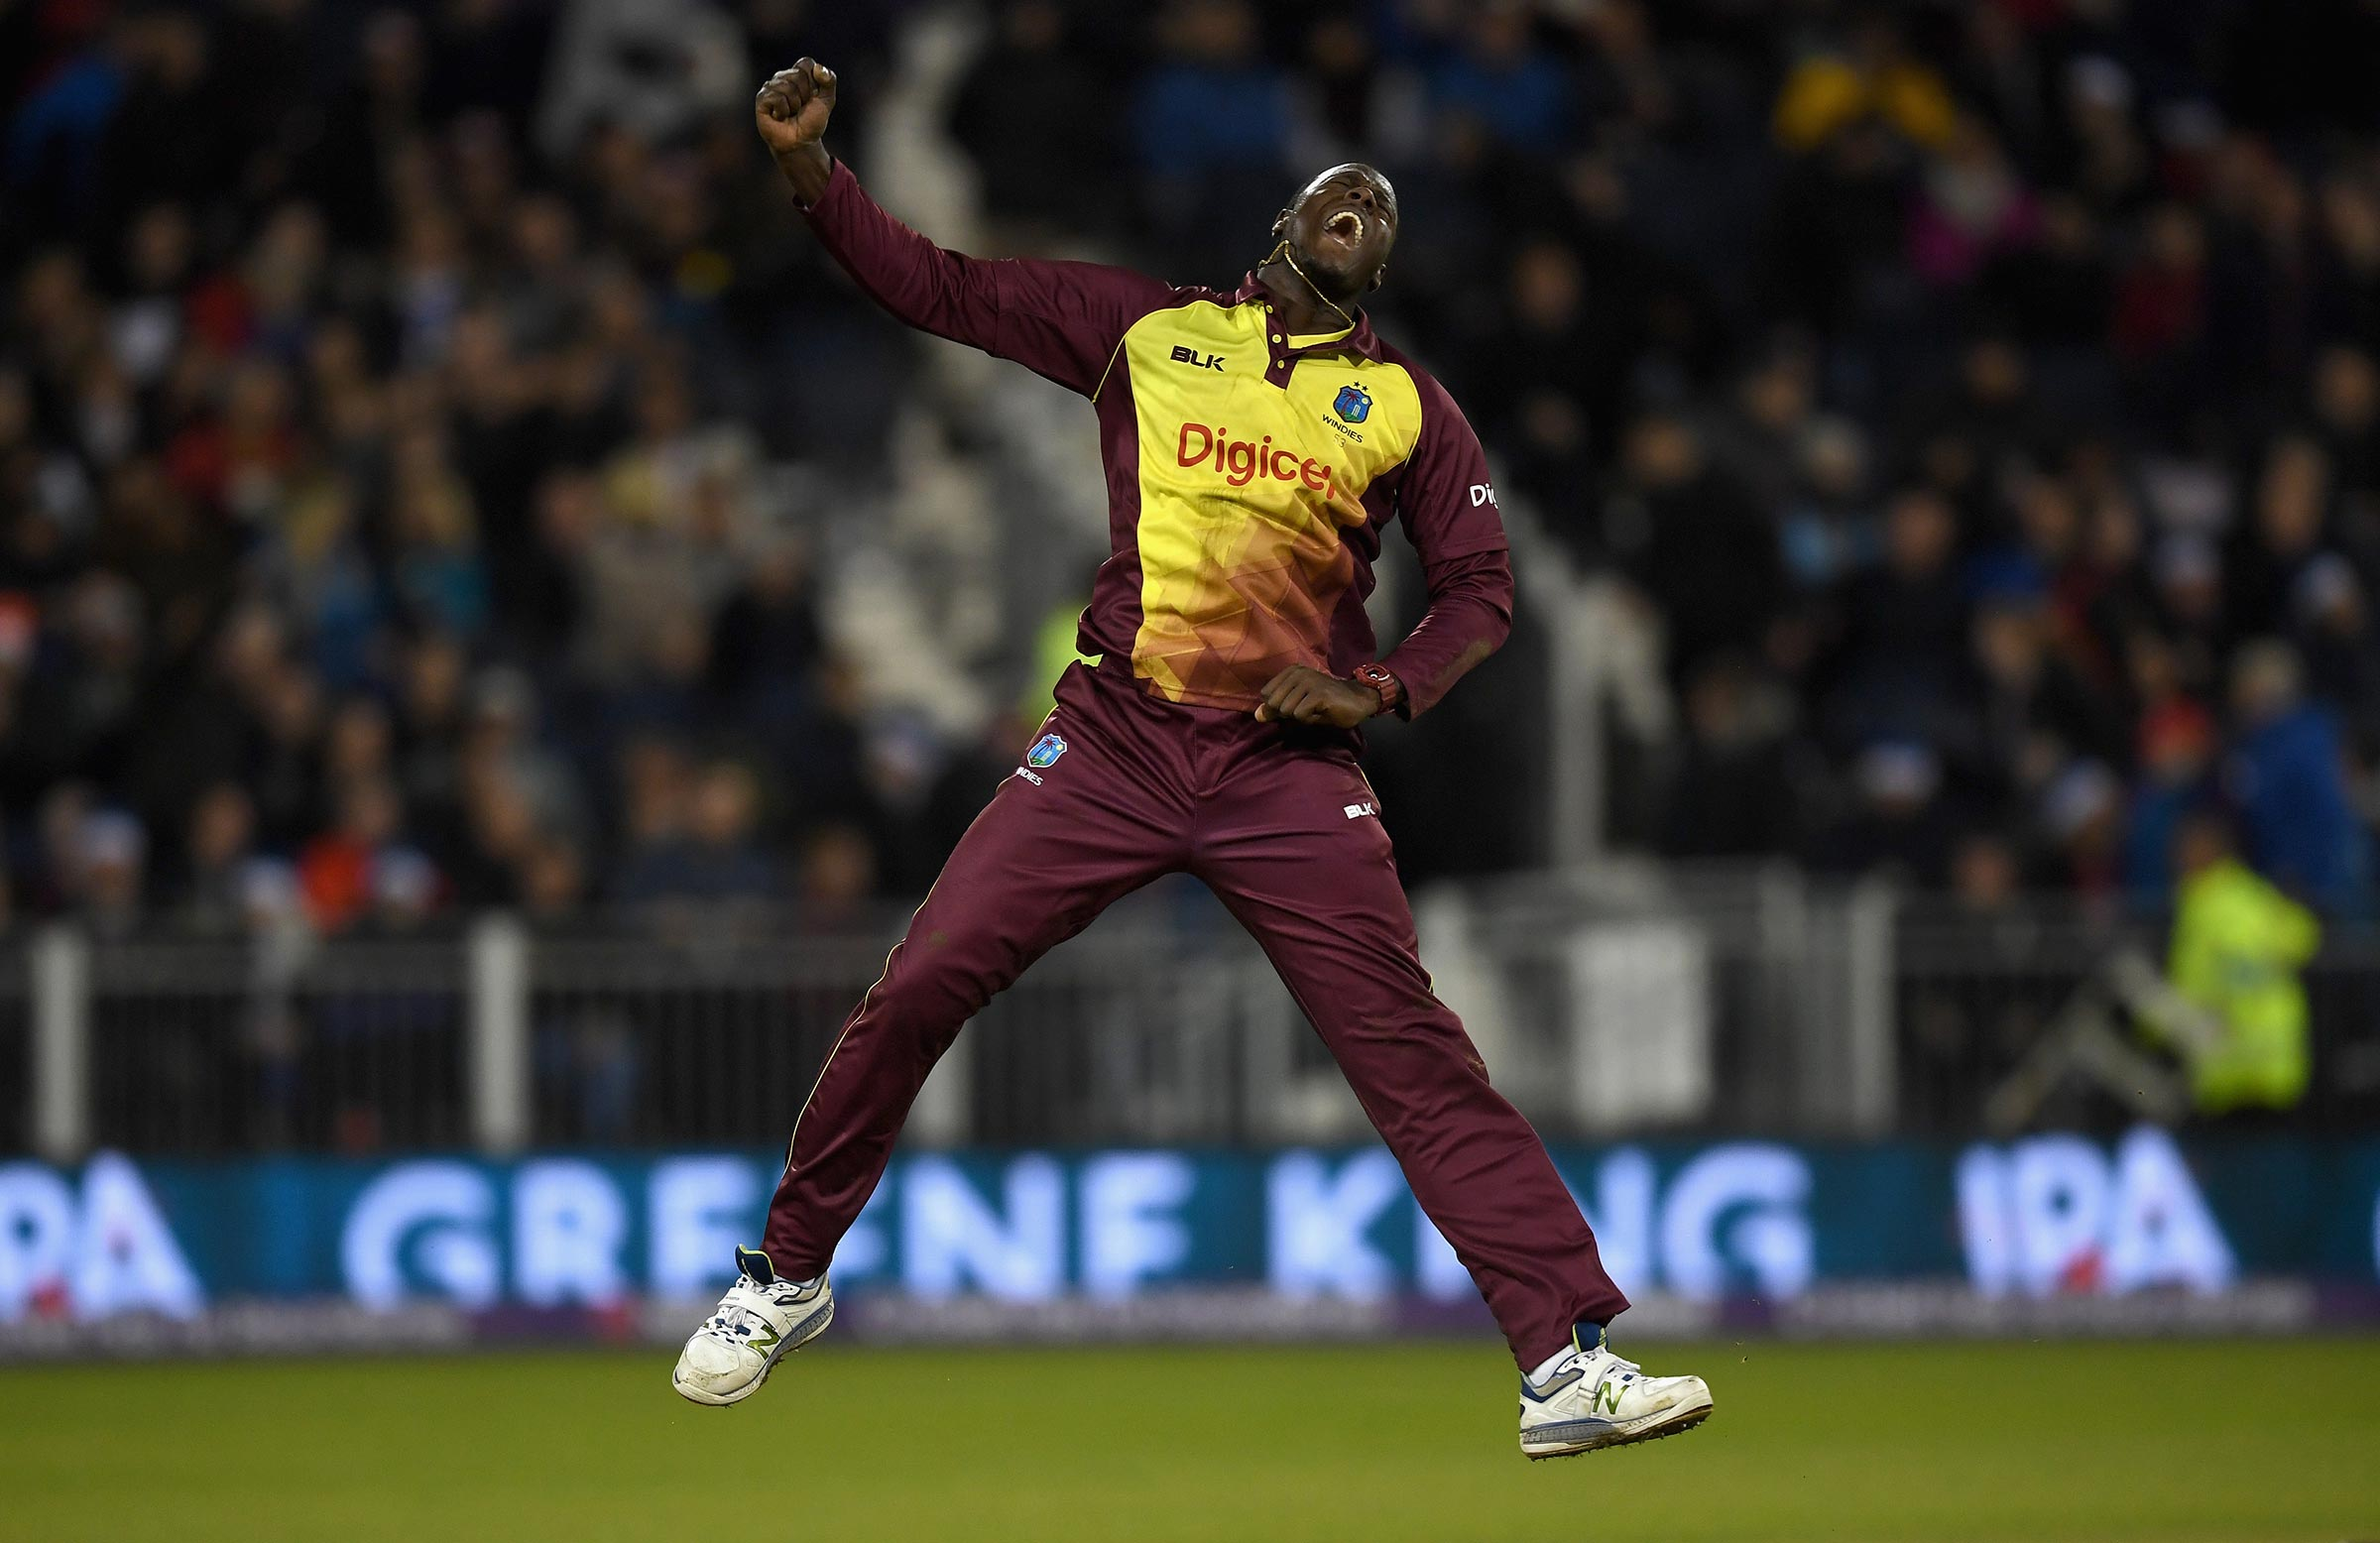 Brathwaite with the celebration of the night // Getty